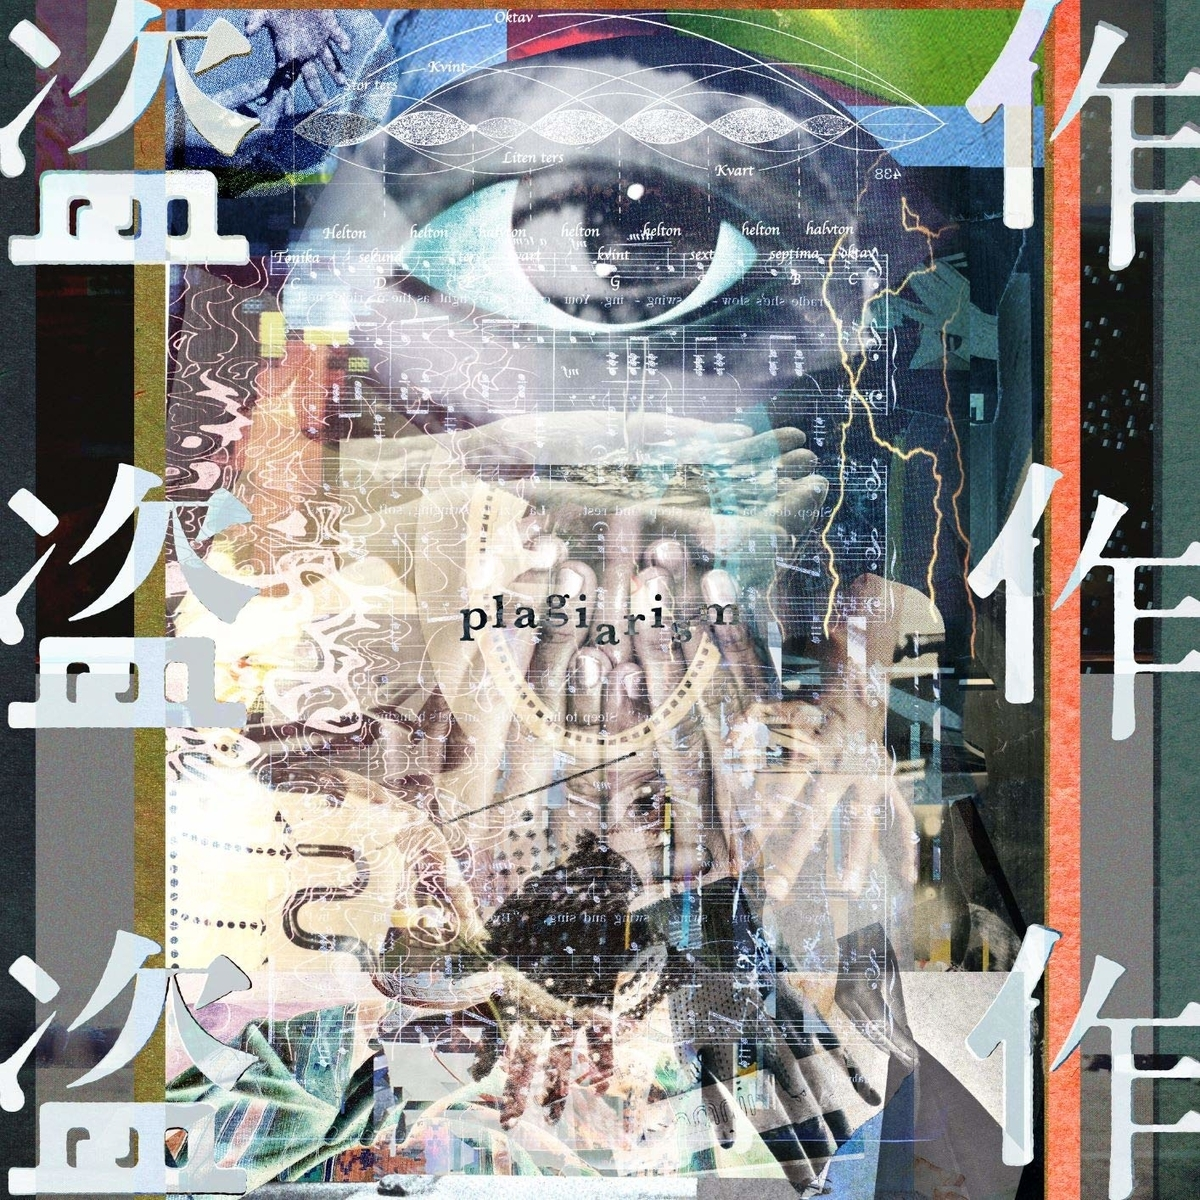 f:id:psychedelicrock0825:20201214203023j:plain